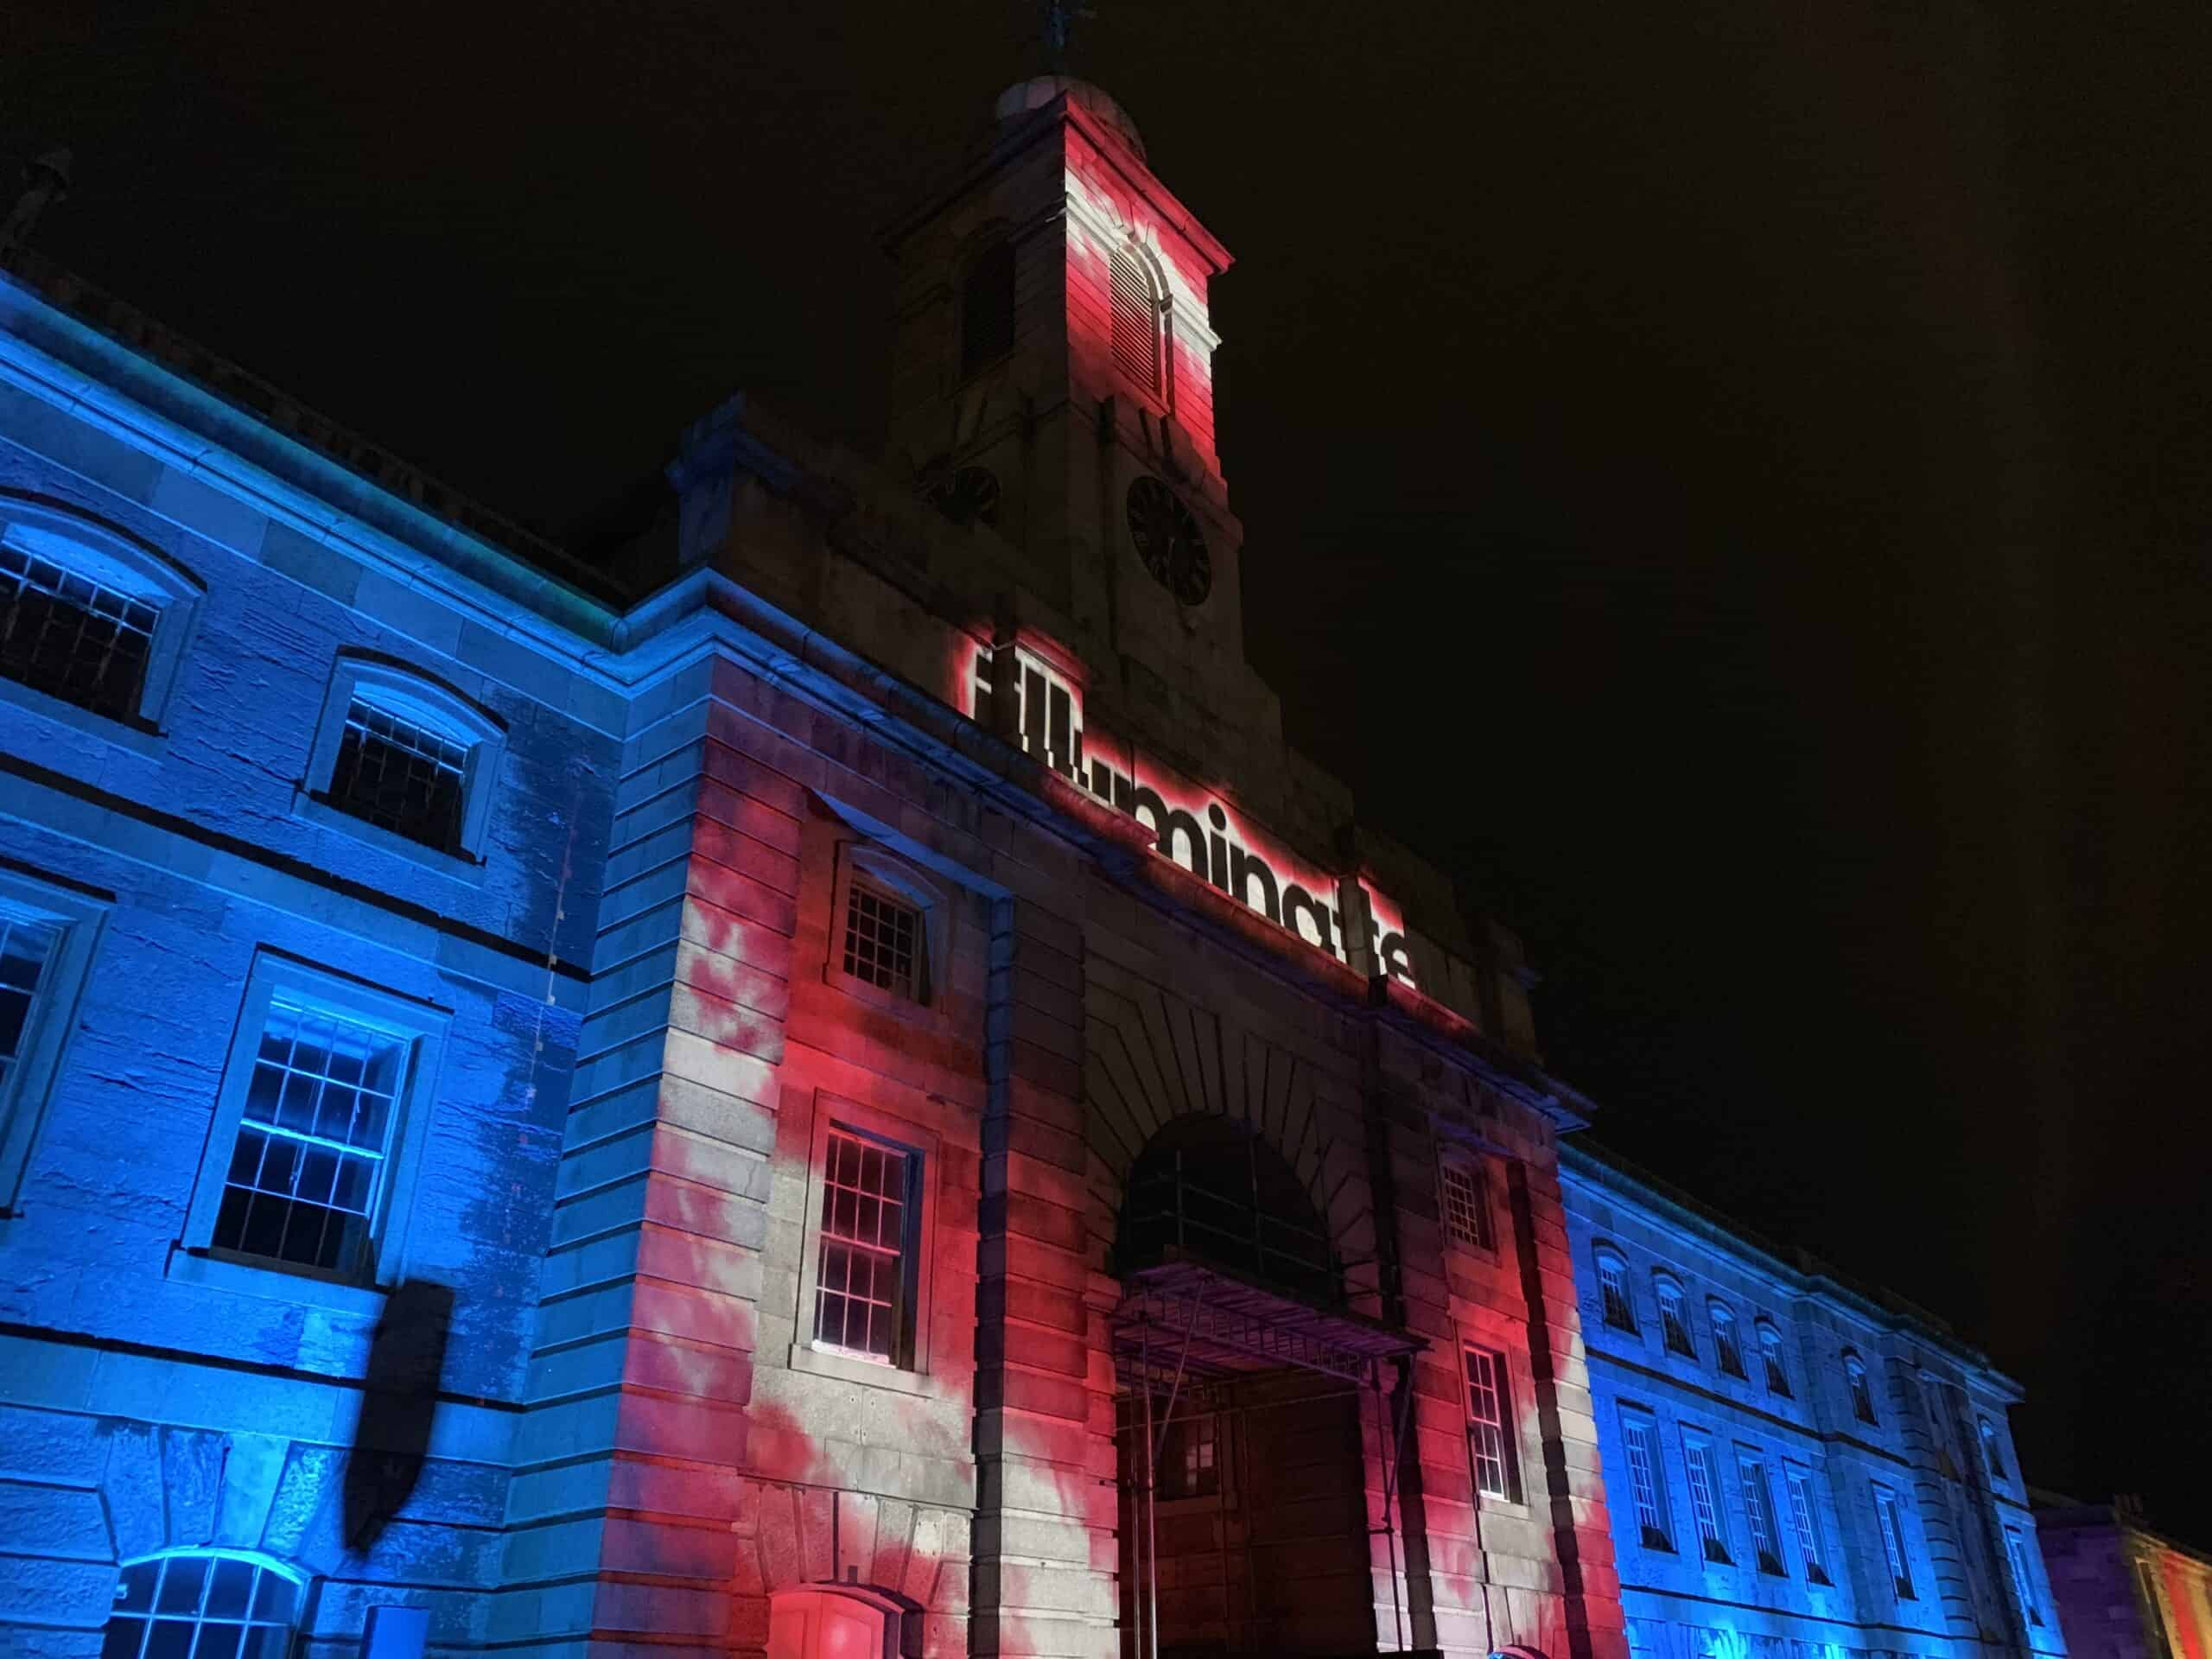 Tower at Royal William Yard lit up during the Illuminate event in Plymouth